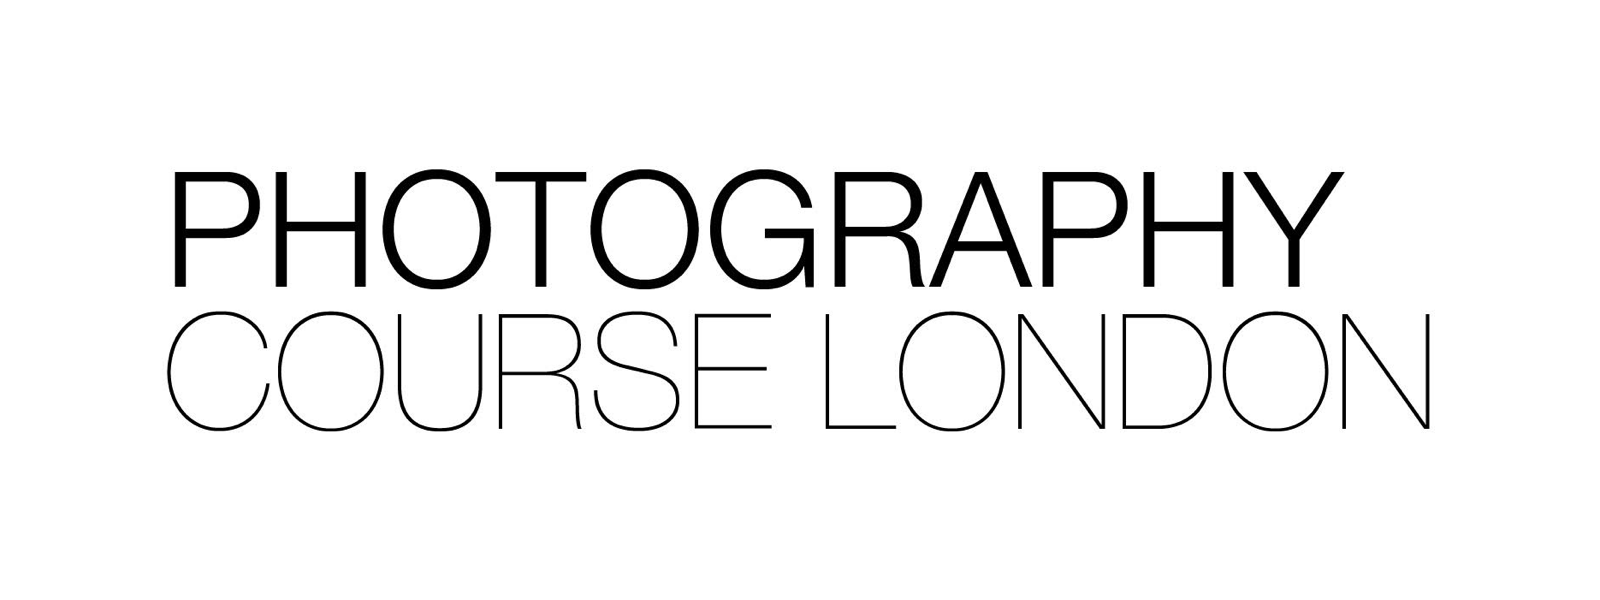 Retouching for Fashion & Beauty by Photography Course London - photography in London